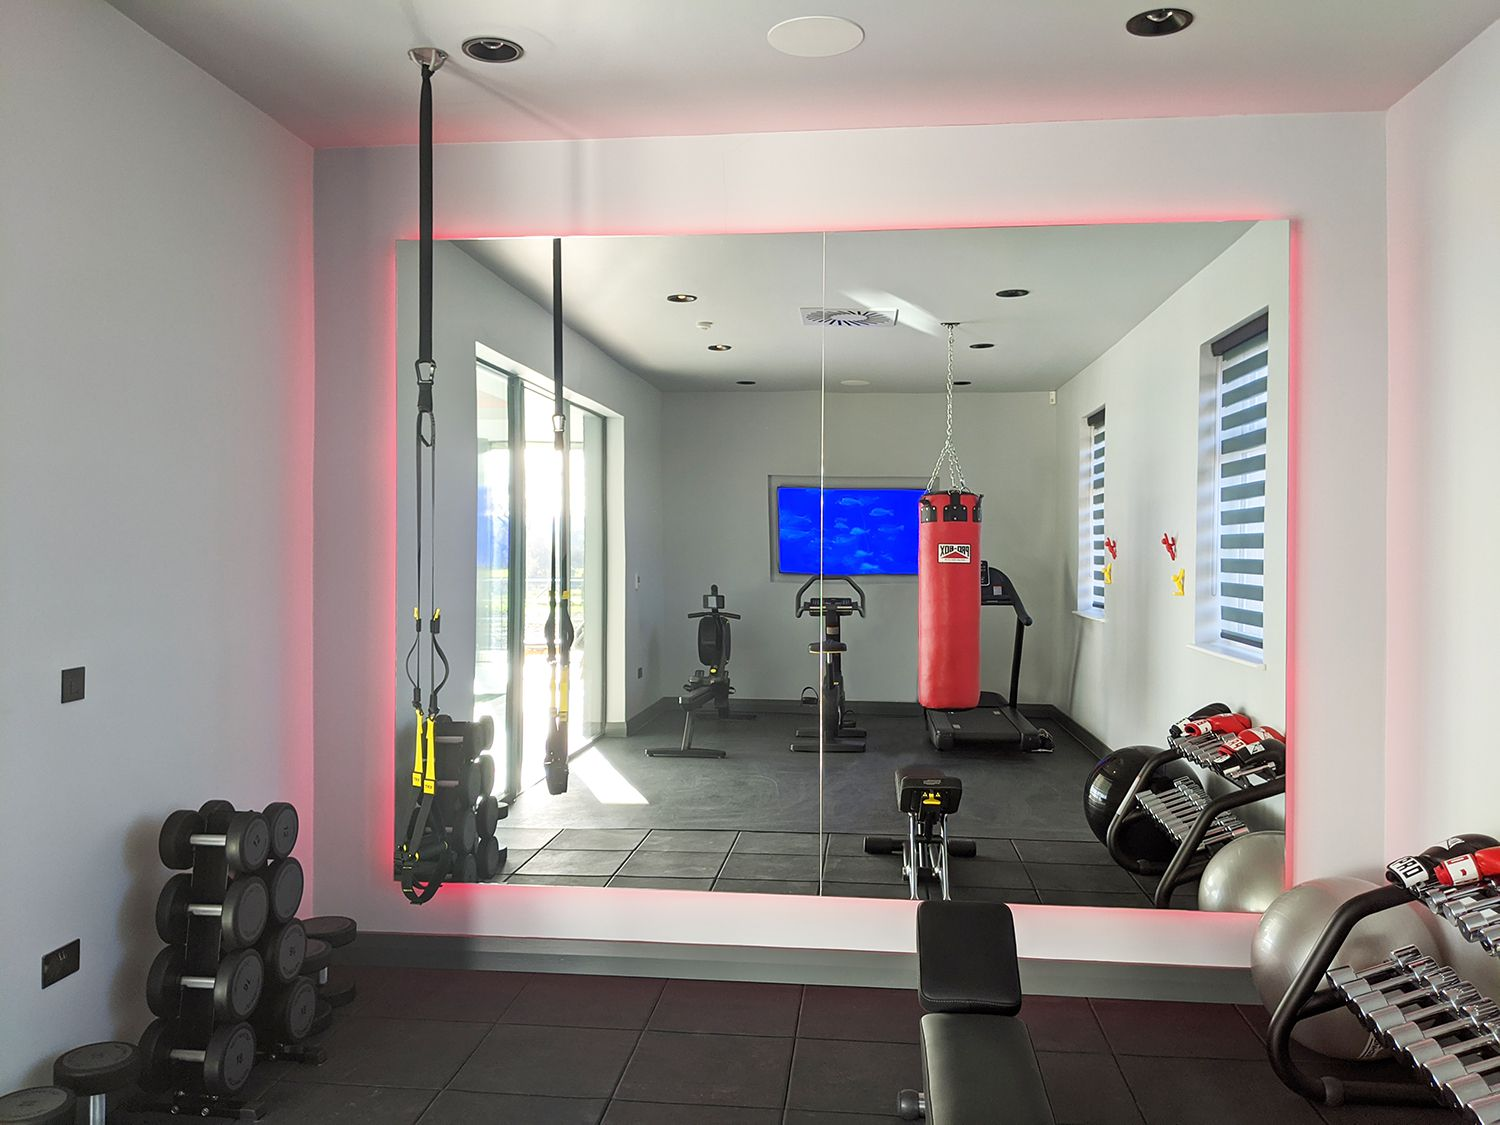 A photo of the gym area, with LED lights around a huge mirror.